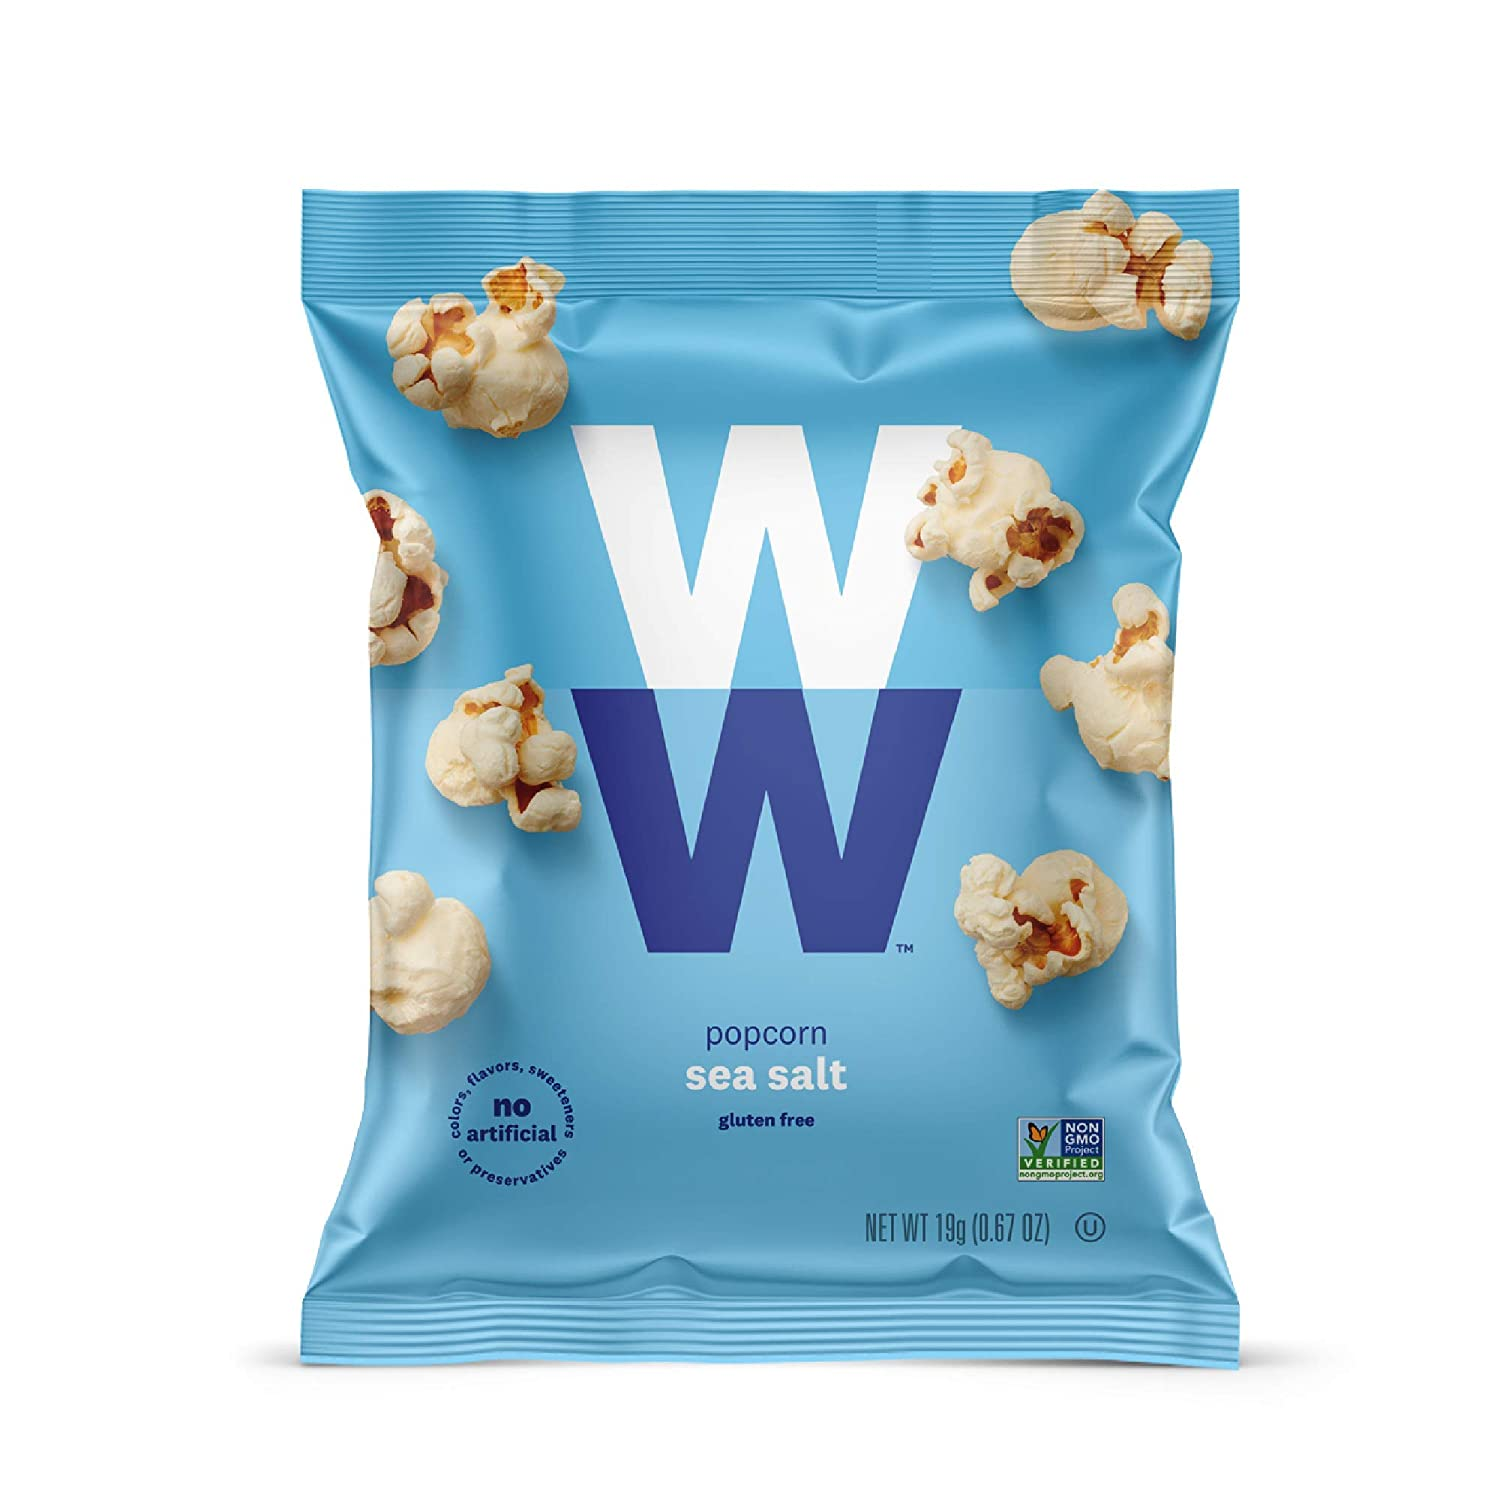 WW Sea Salt Popcorn - Gluten-free, 2 SmartPoints - 12 Bags Total - Weight Watchers Reimagined